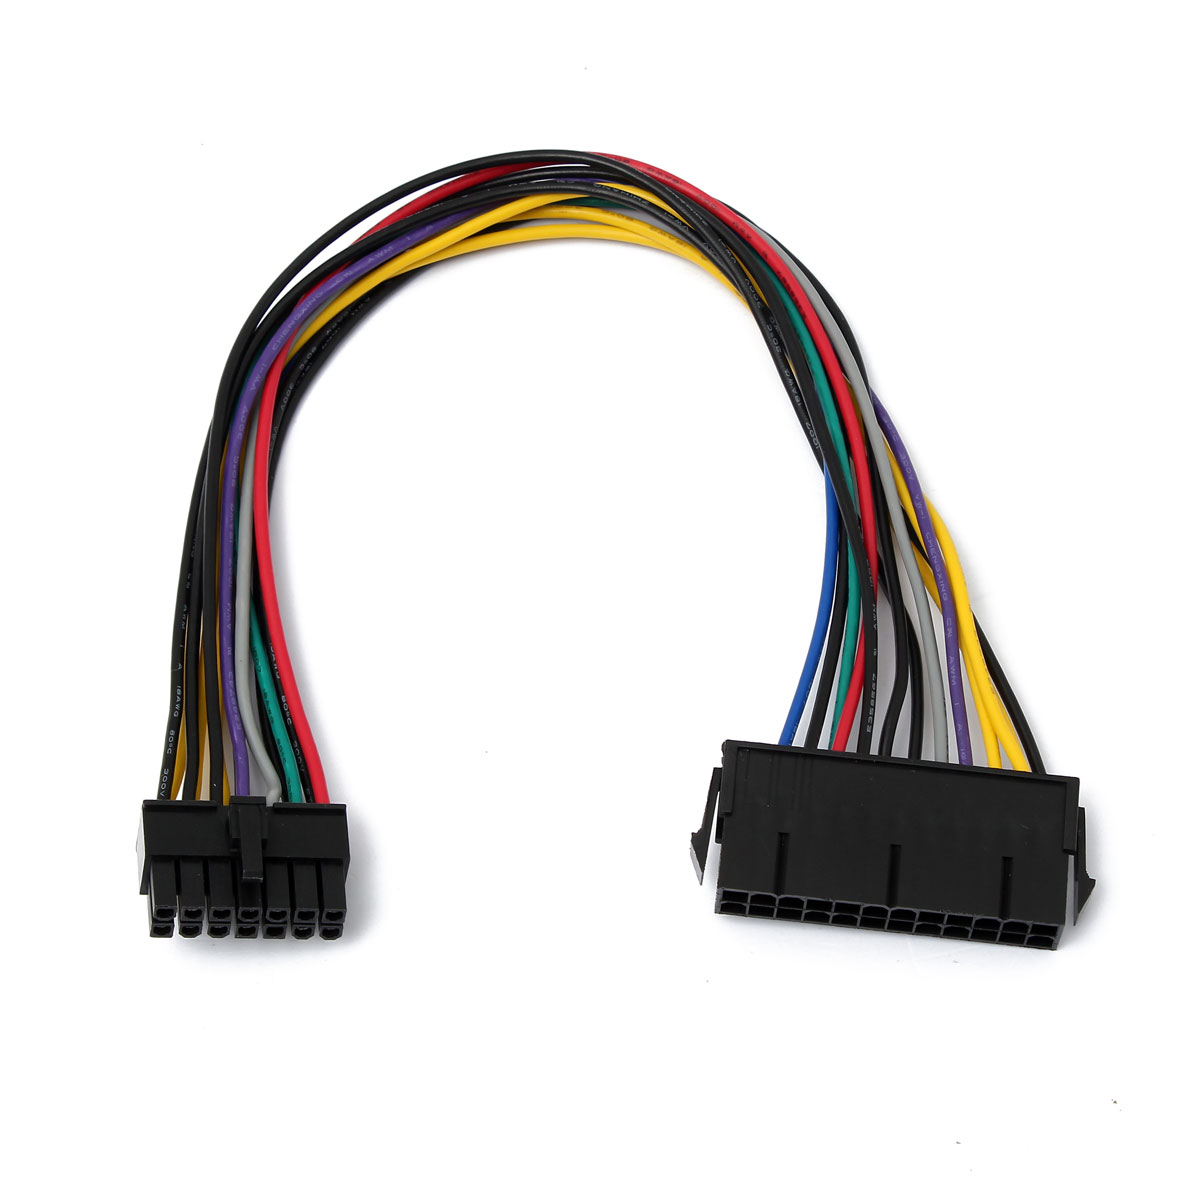 24 pin to 14 pin power supply atx cable for lenovo q77 b75. Black Bedroom Furniture Sets. Home Design Ideas